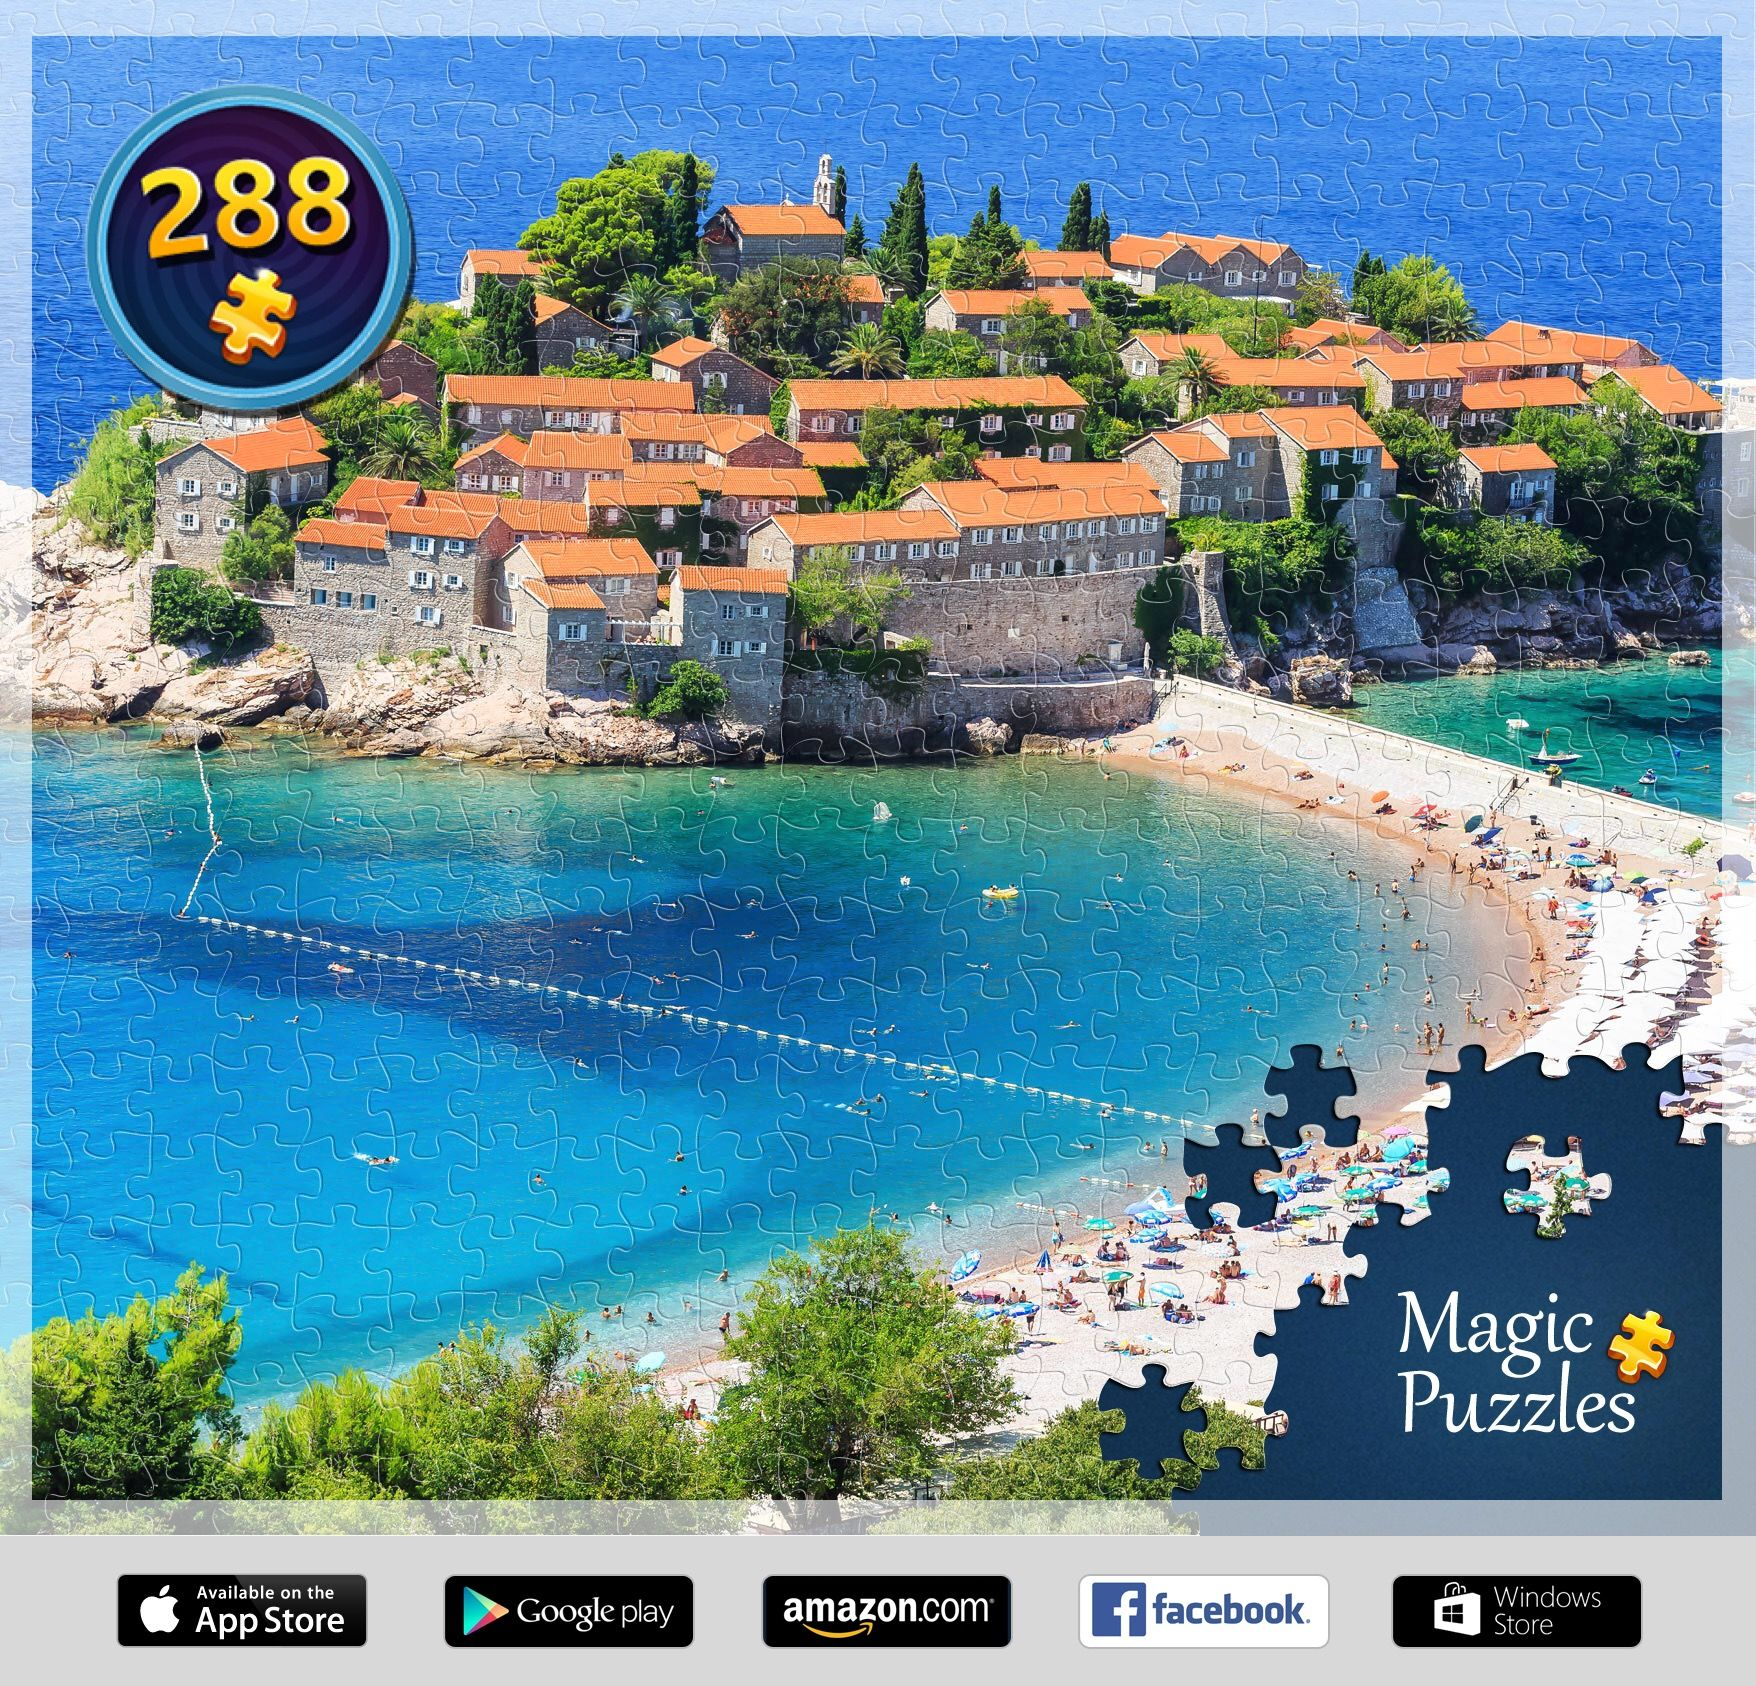 Ive Just Solved This Puzzle In The Magic Jigsaw Puzzles